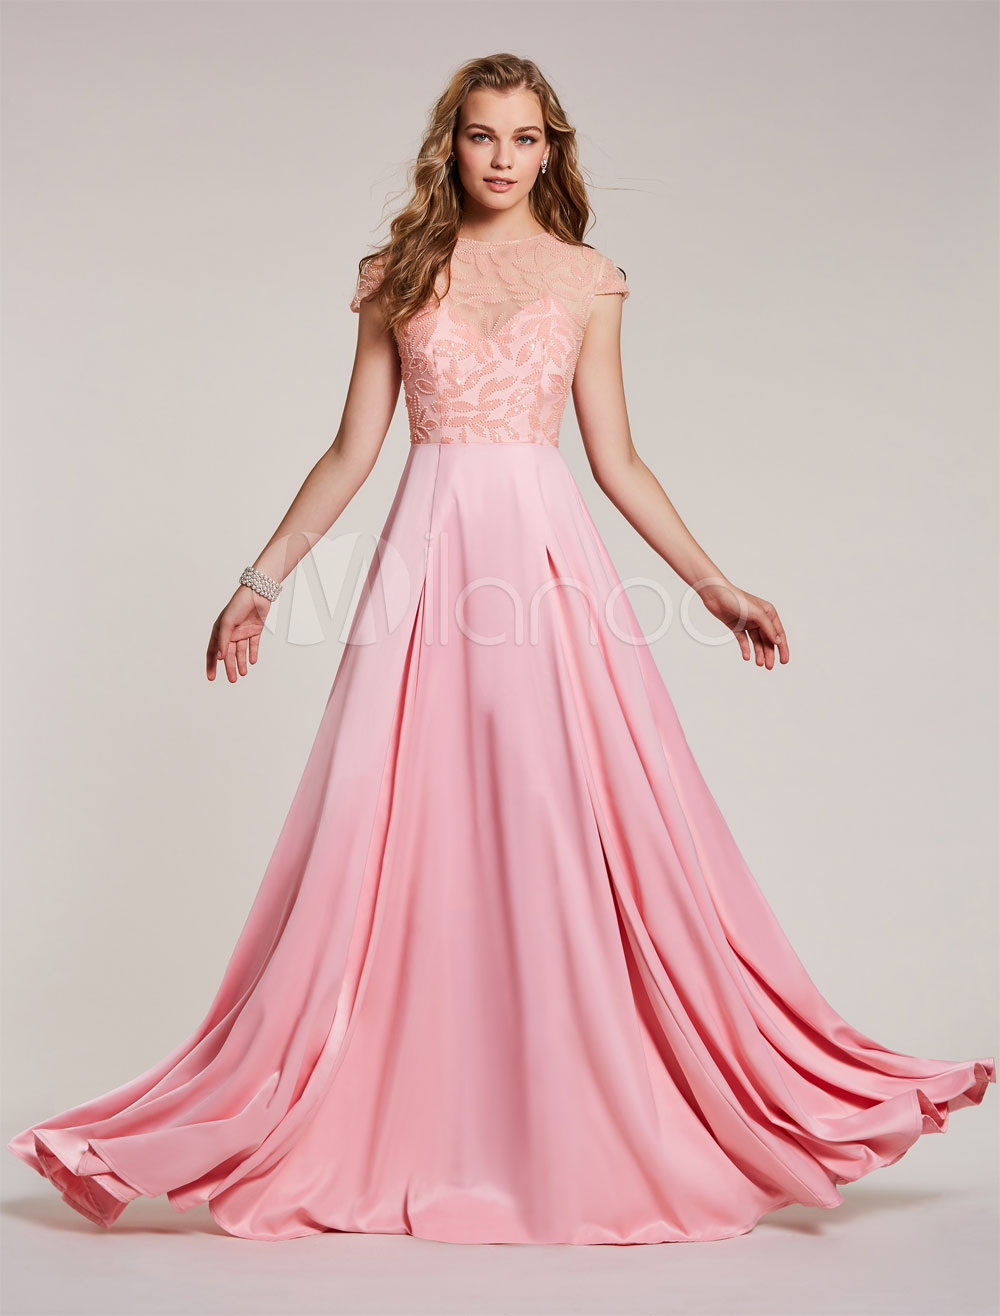 Prom Dresses Long Soft Pink Satin Cap Sleeve Beading Floor Length Formal Gowns